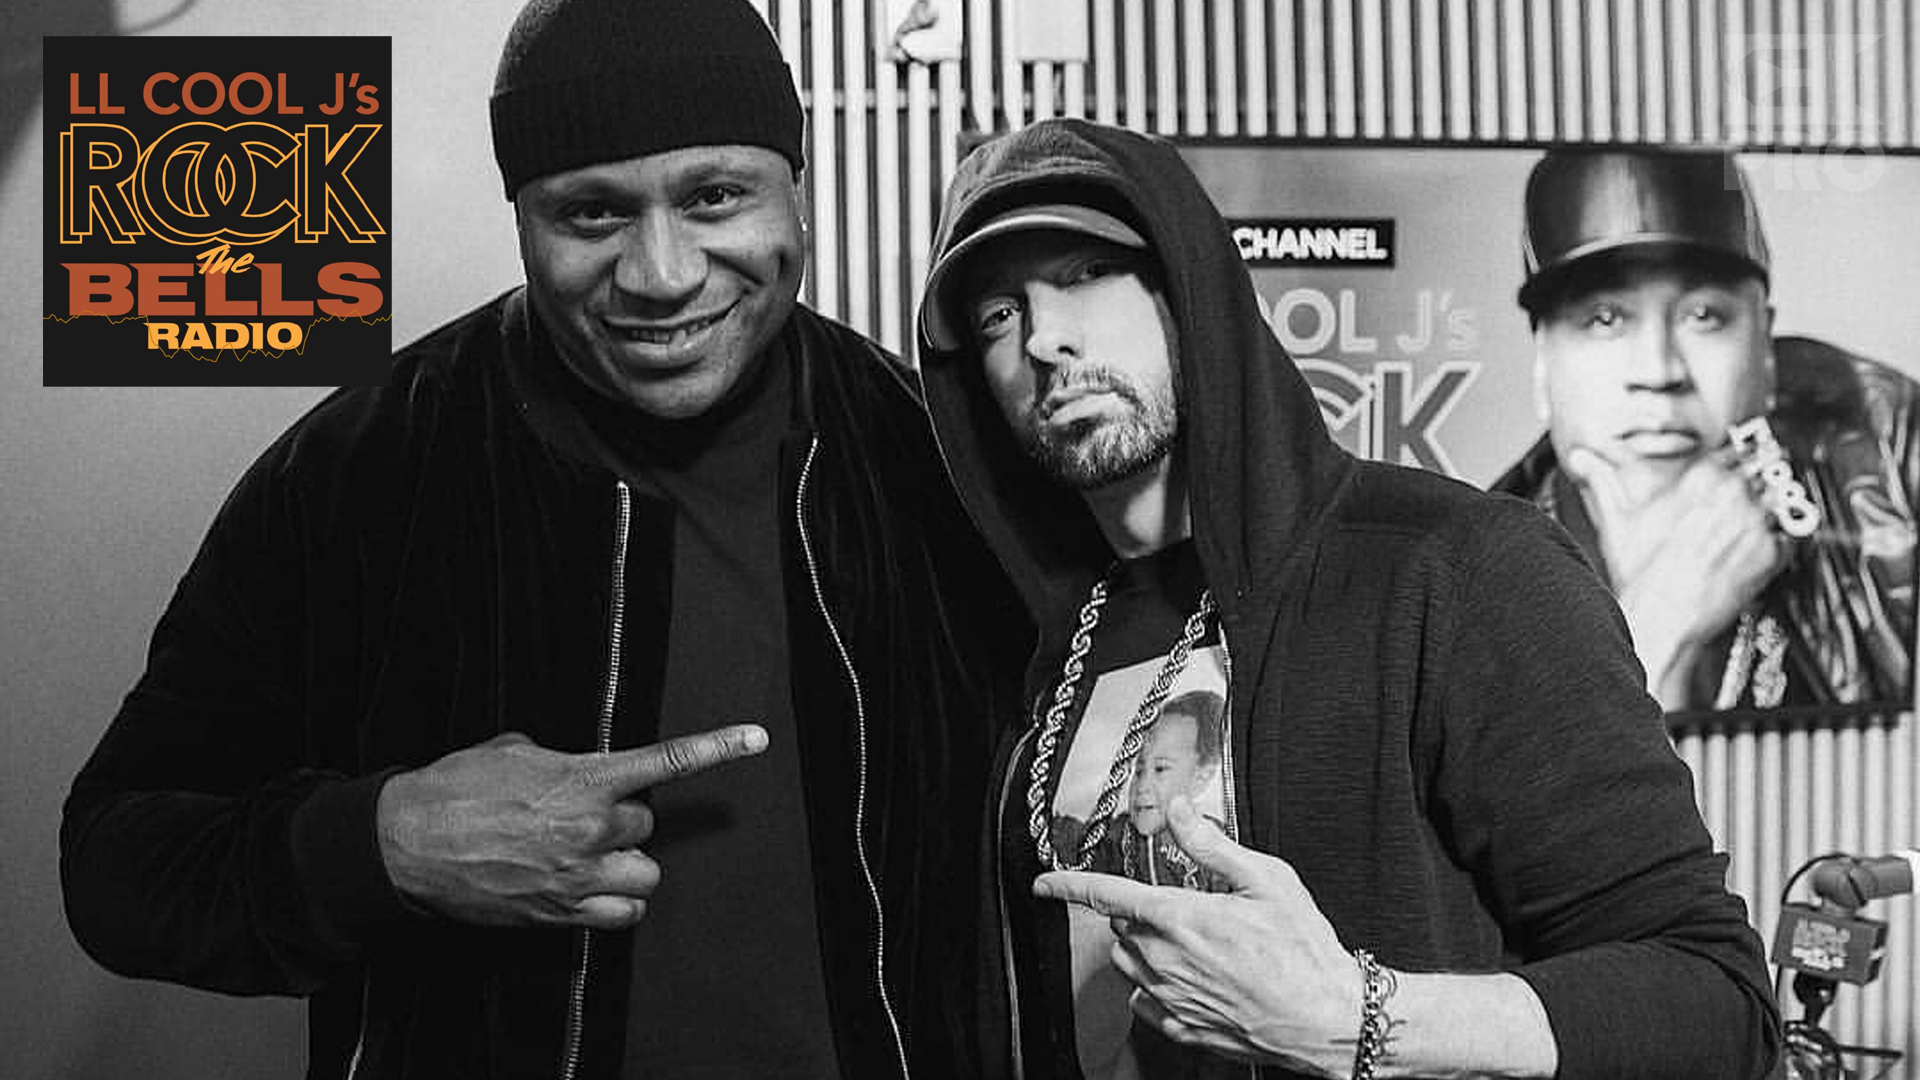 Full Interview w/ LL Cool J: Eminem's childhood, music influences and legacy which no one will be able to beat